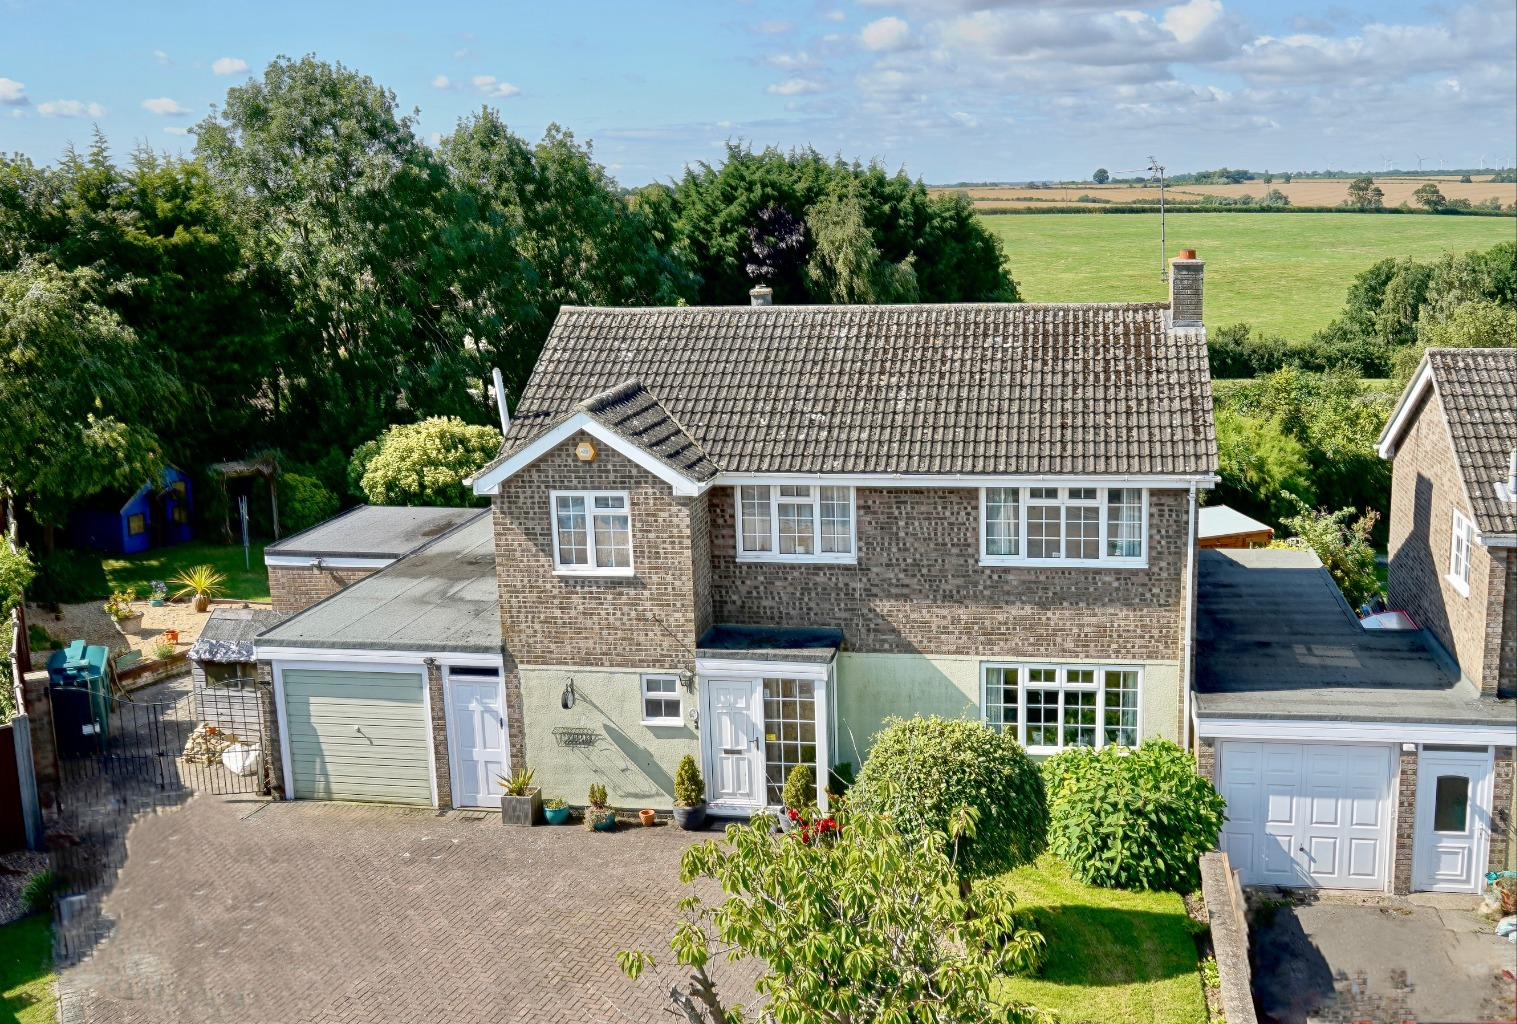 4 bed detached house for sale in Yeomans Close, Huntingdon - Property Image 1